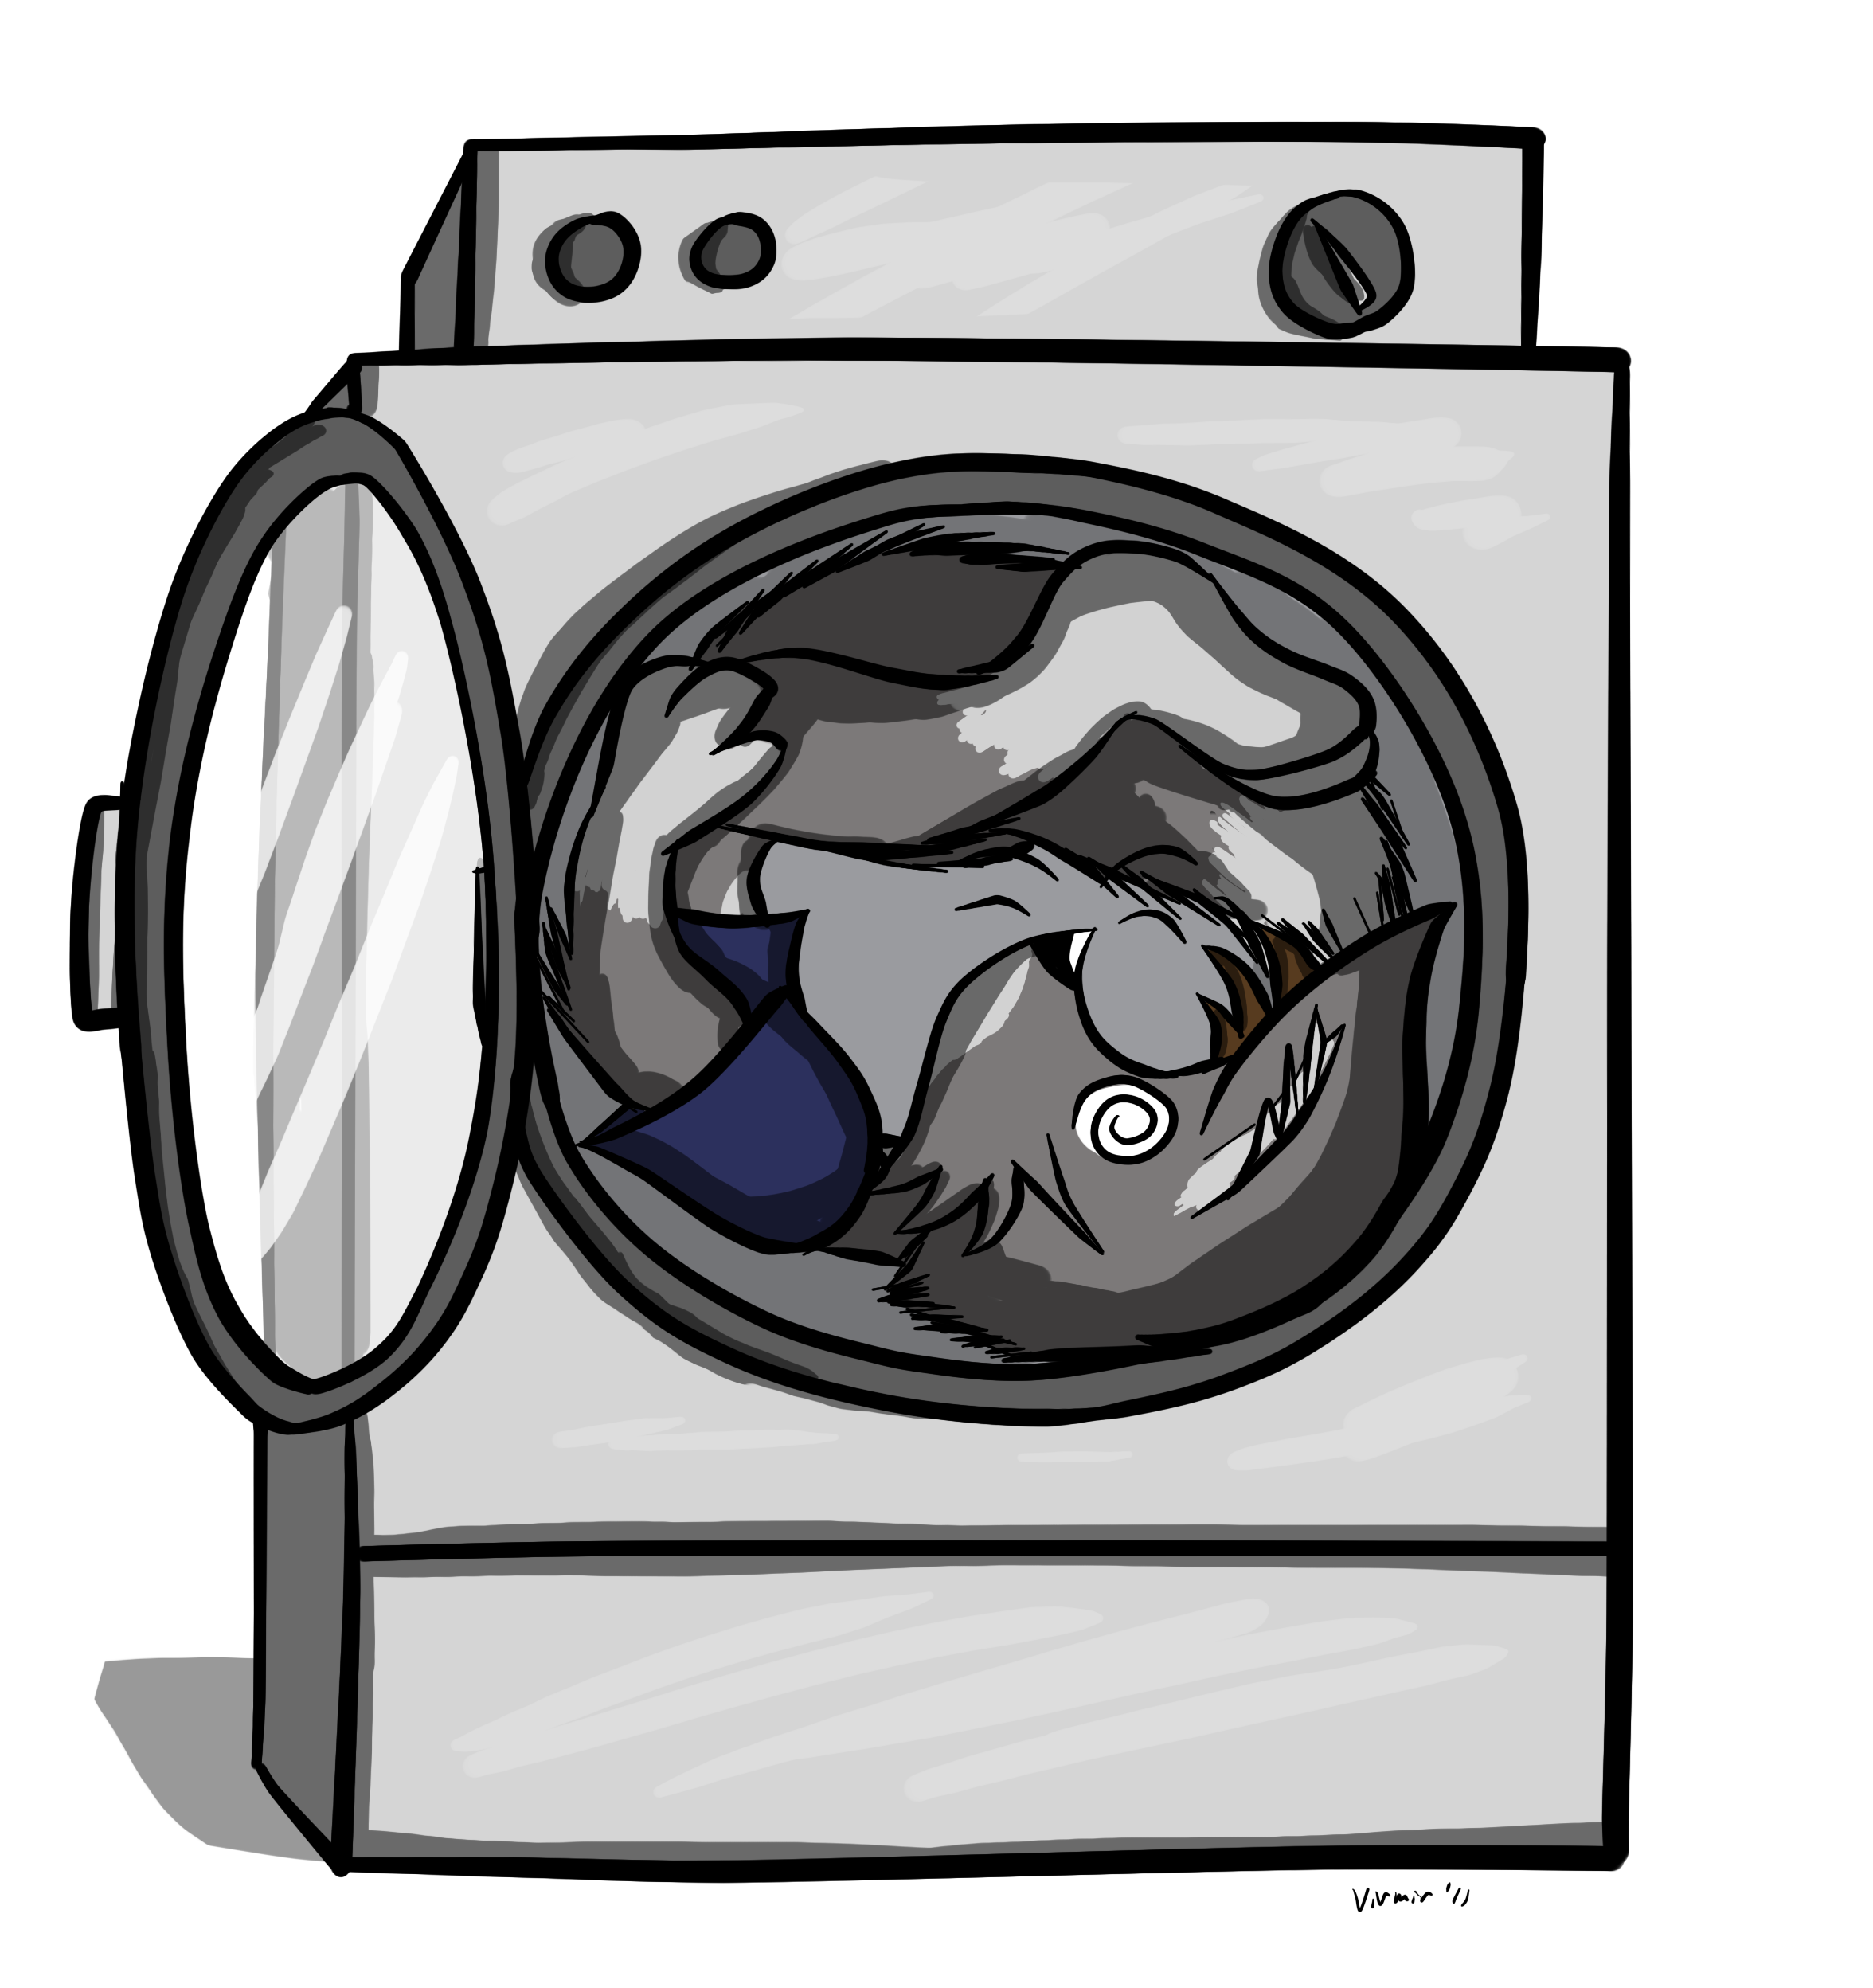 Art by virmir tech. Dryer drawing clipart black and white